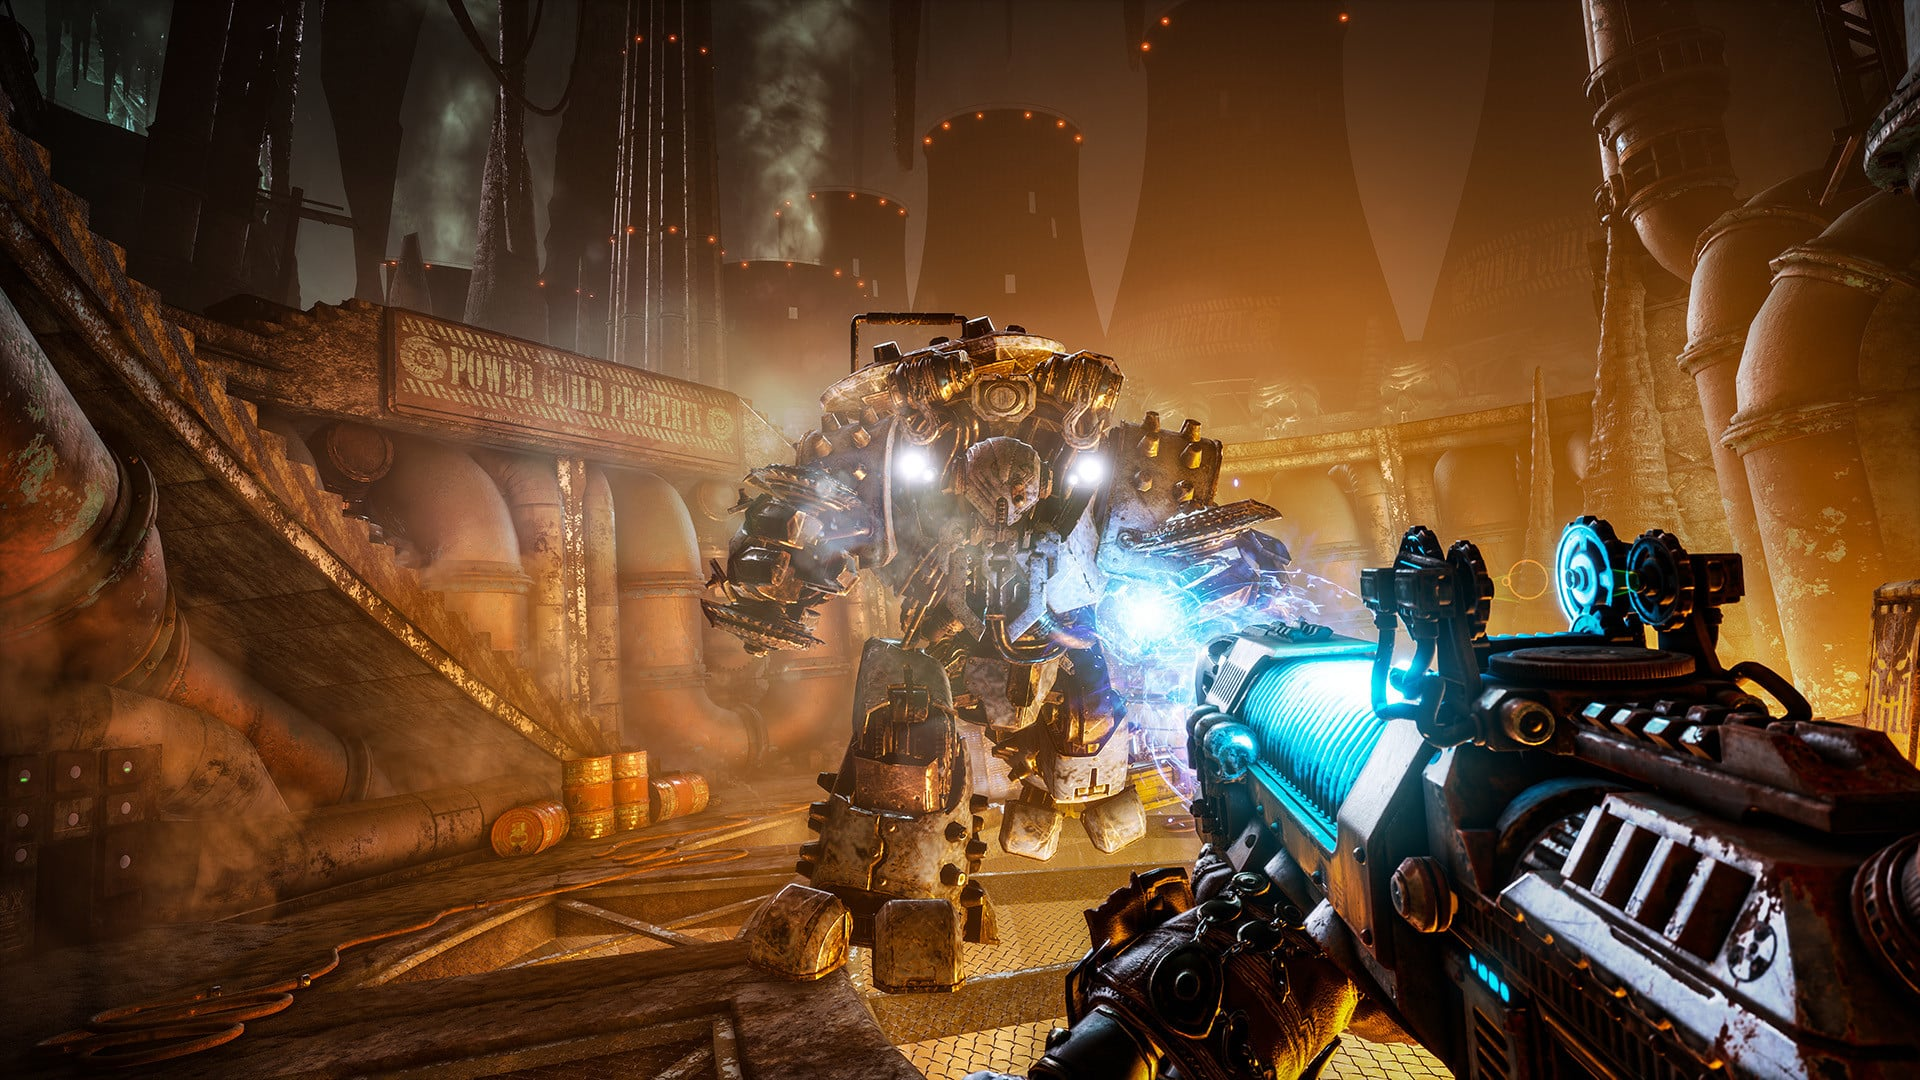 Focus Home Interactive Necromunda: Hired Gun interview Streum On Studio Victor Mercier game producer Warhammer 40,000 40K brutal frenetic first-person shooter fast FPS with cyber mastiff